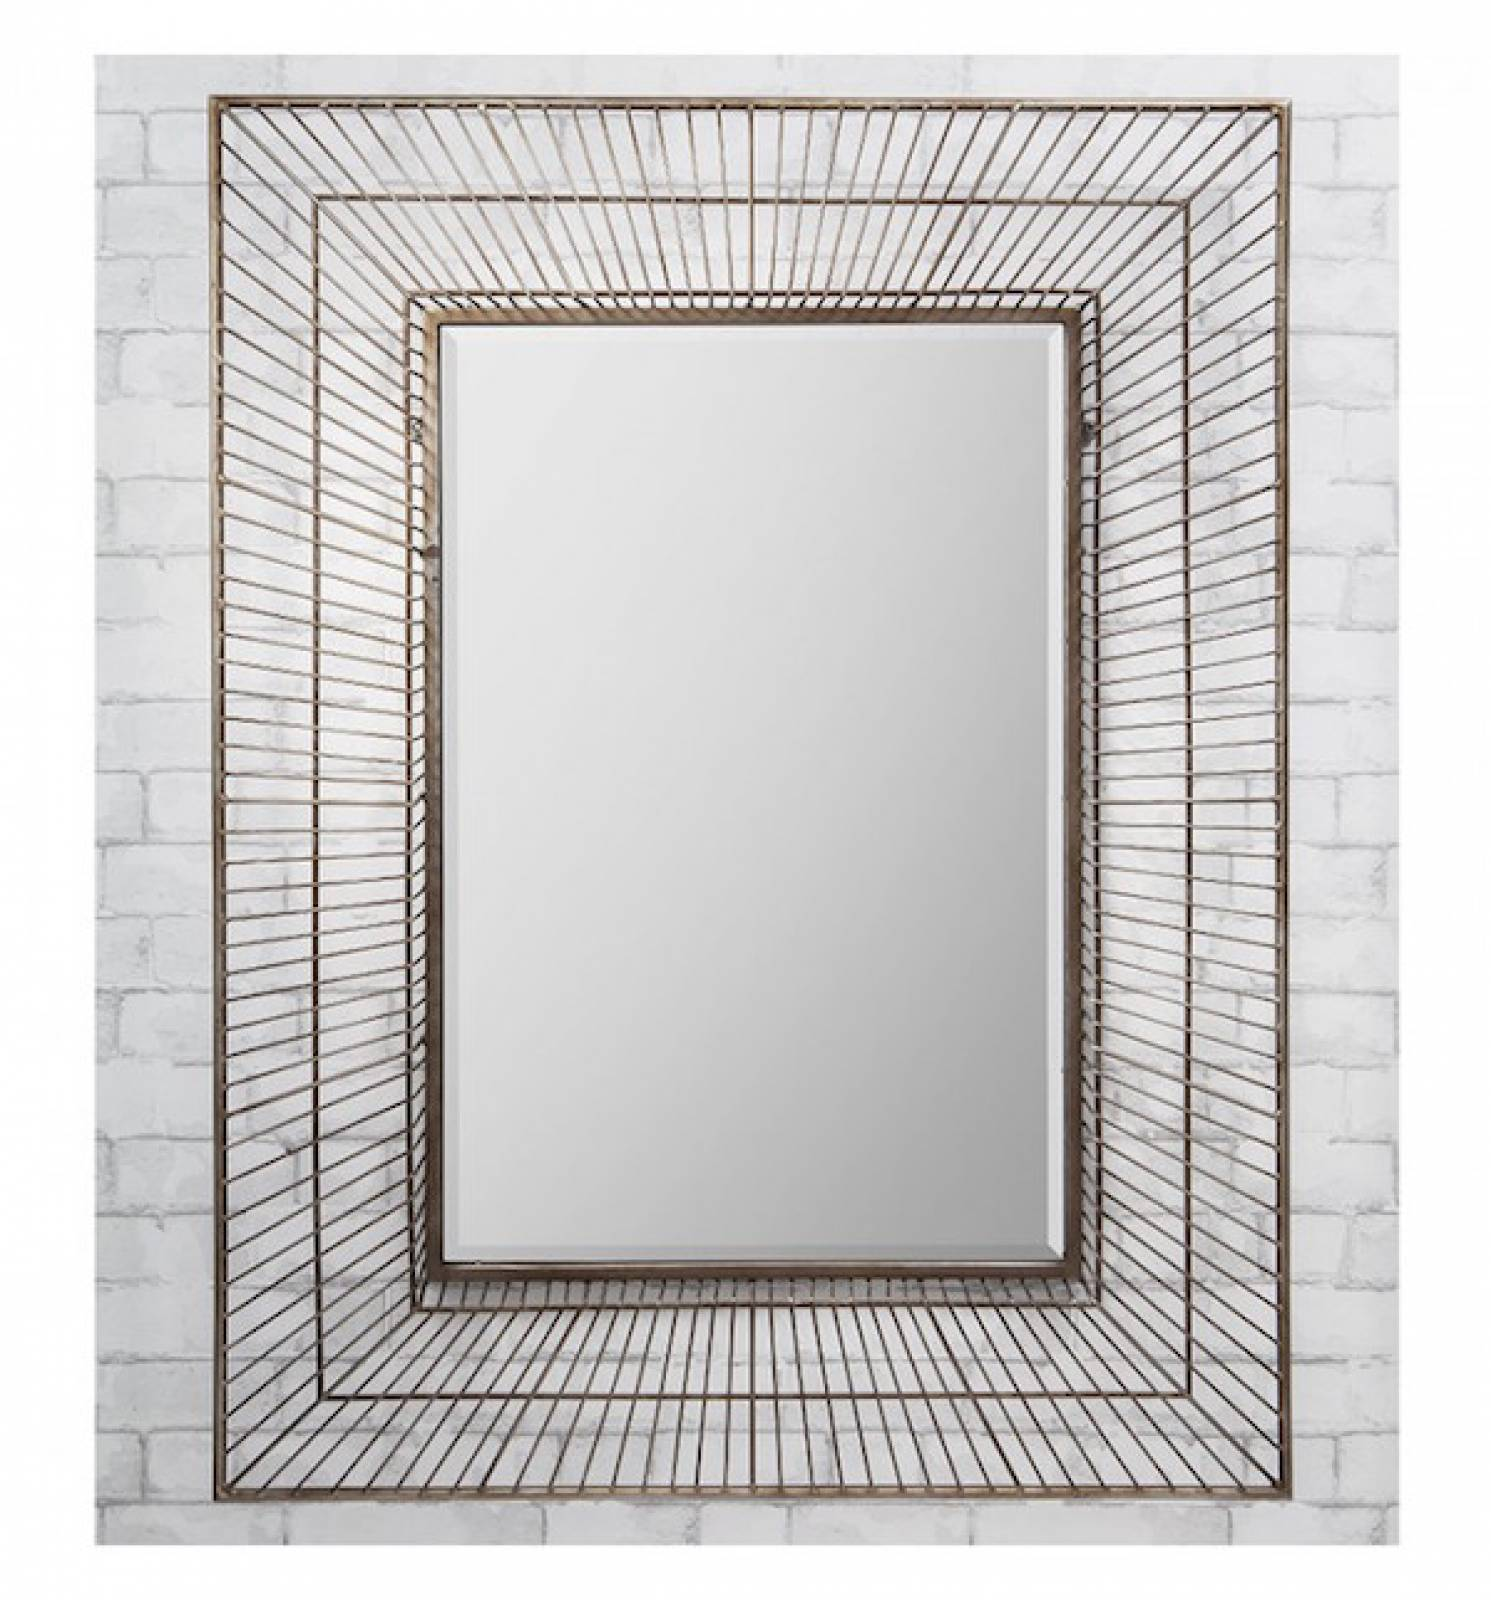 Olden Large Rectangular Wire Frame Mirror thumbnails